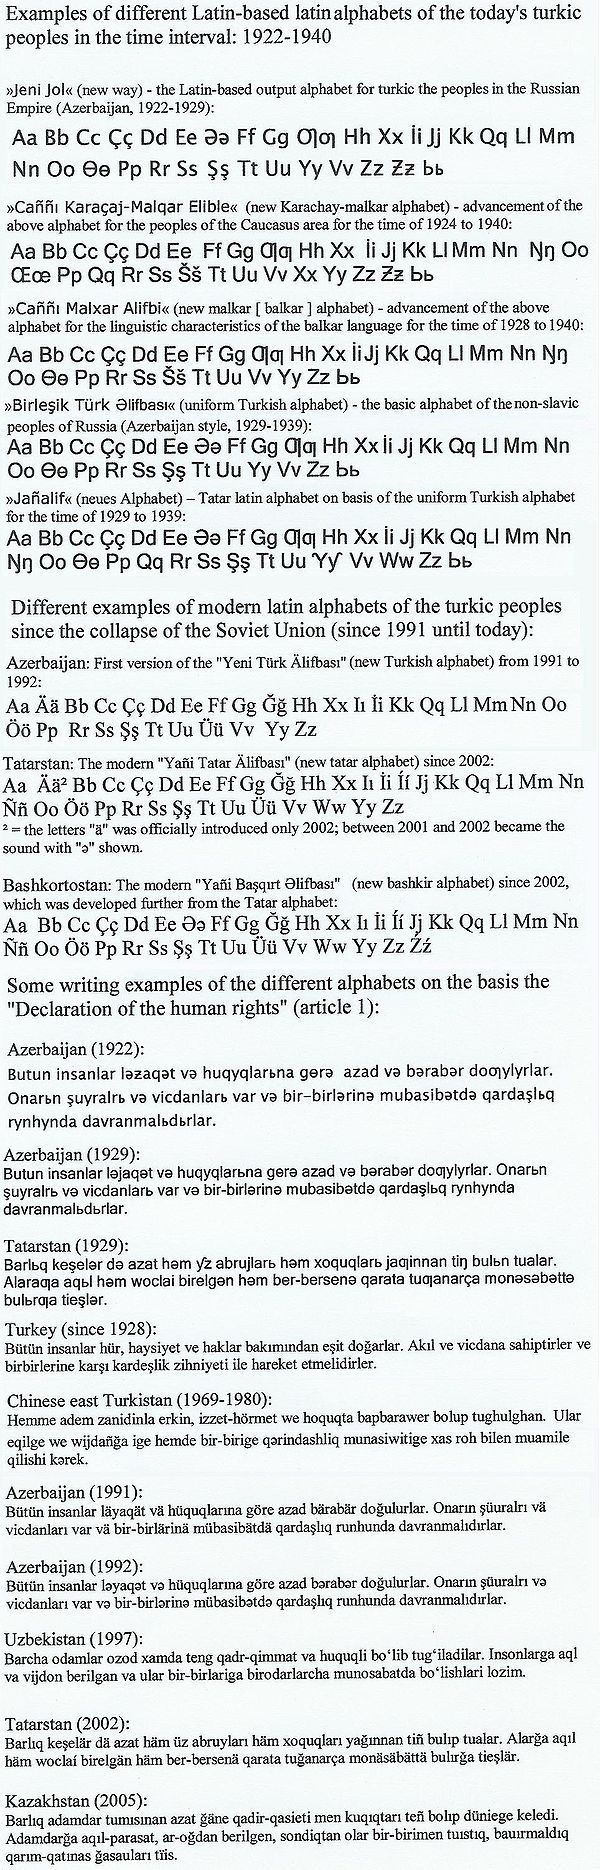 New Turkic alphabets.jpg